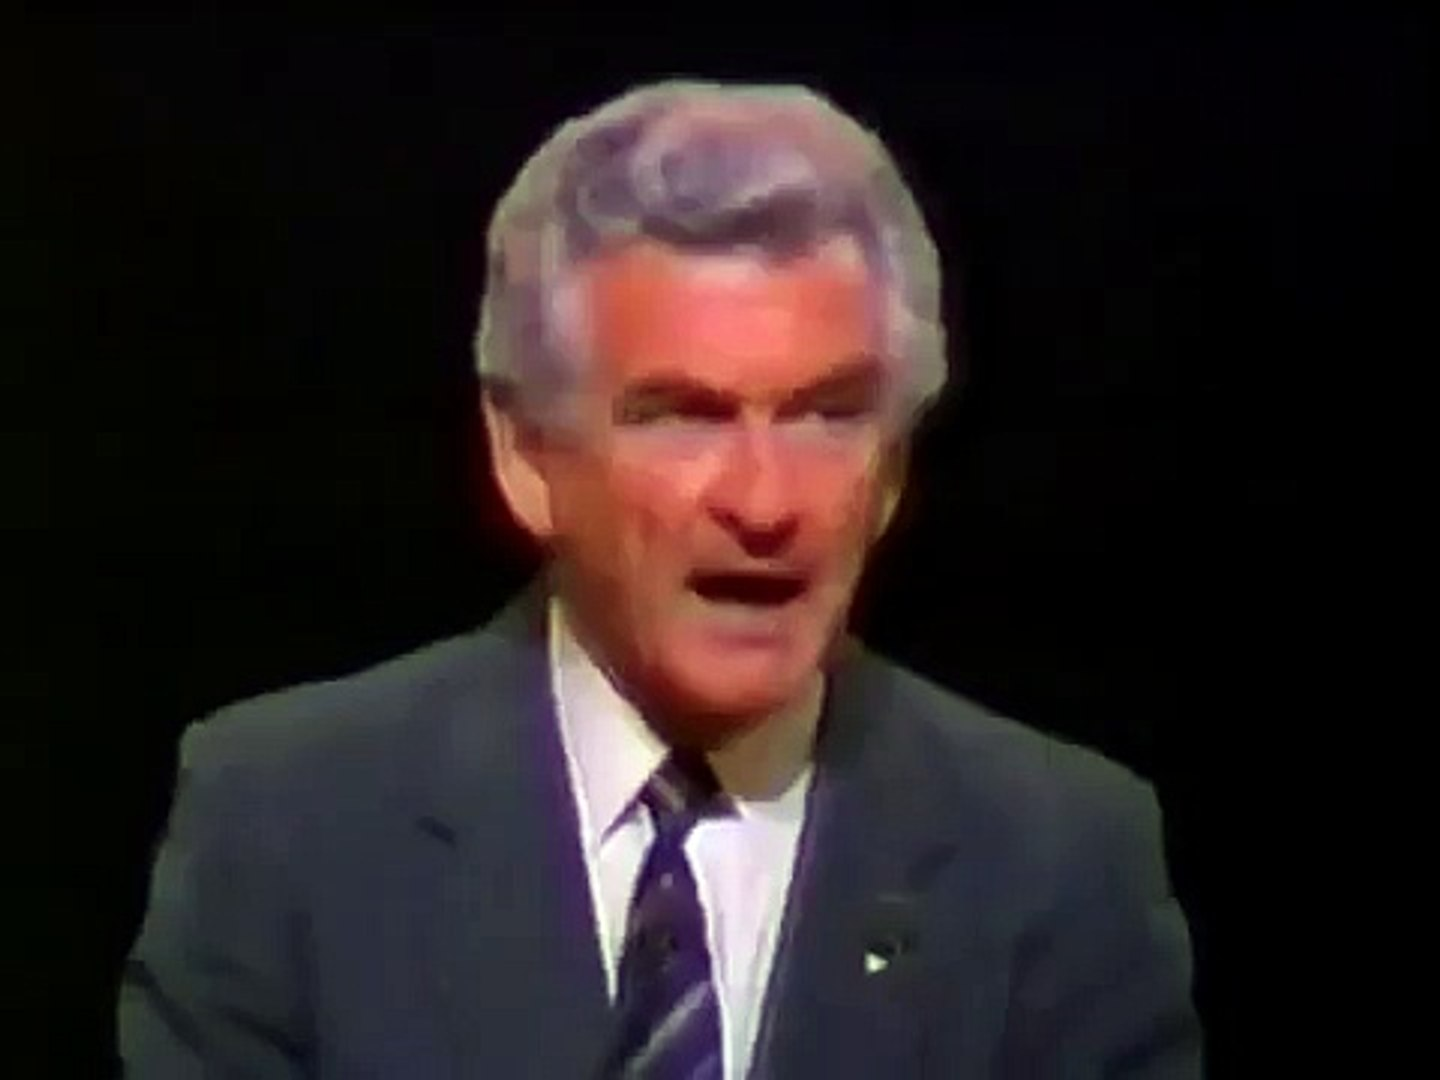 Recession - Paul Keating and Bob Hawke musical number